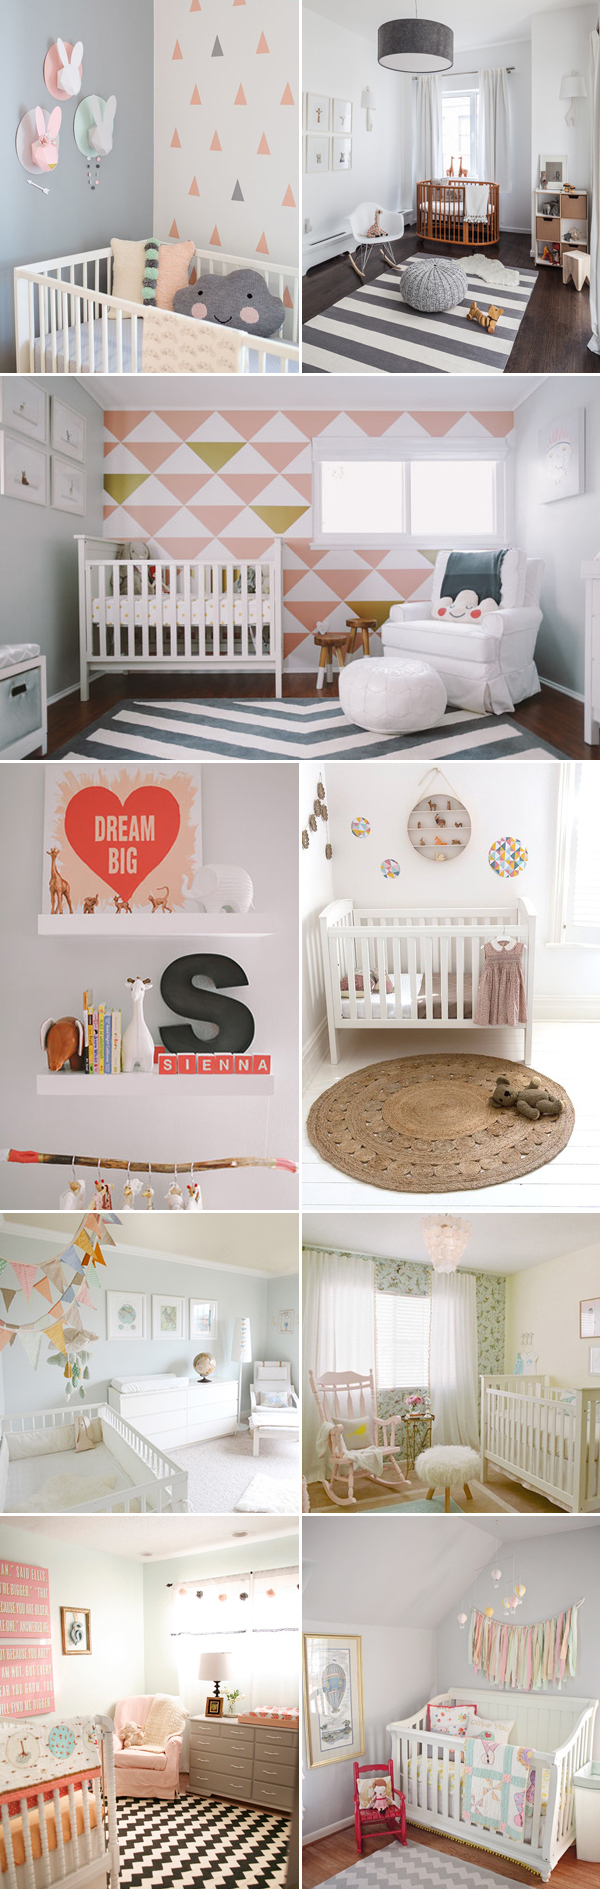 Nusery-Rooms-01-adorable